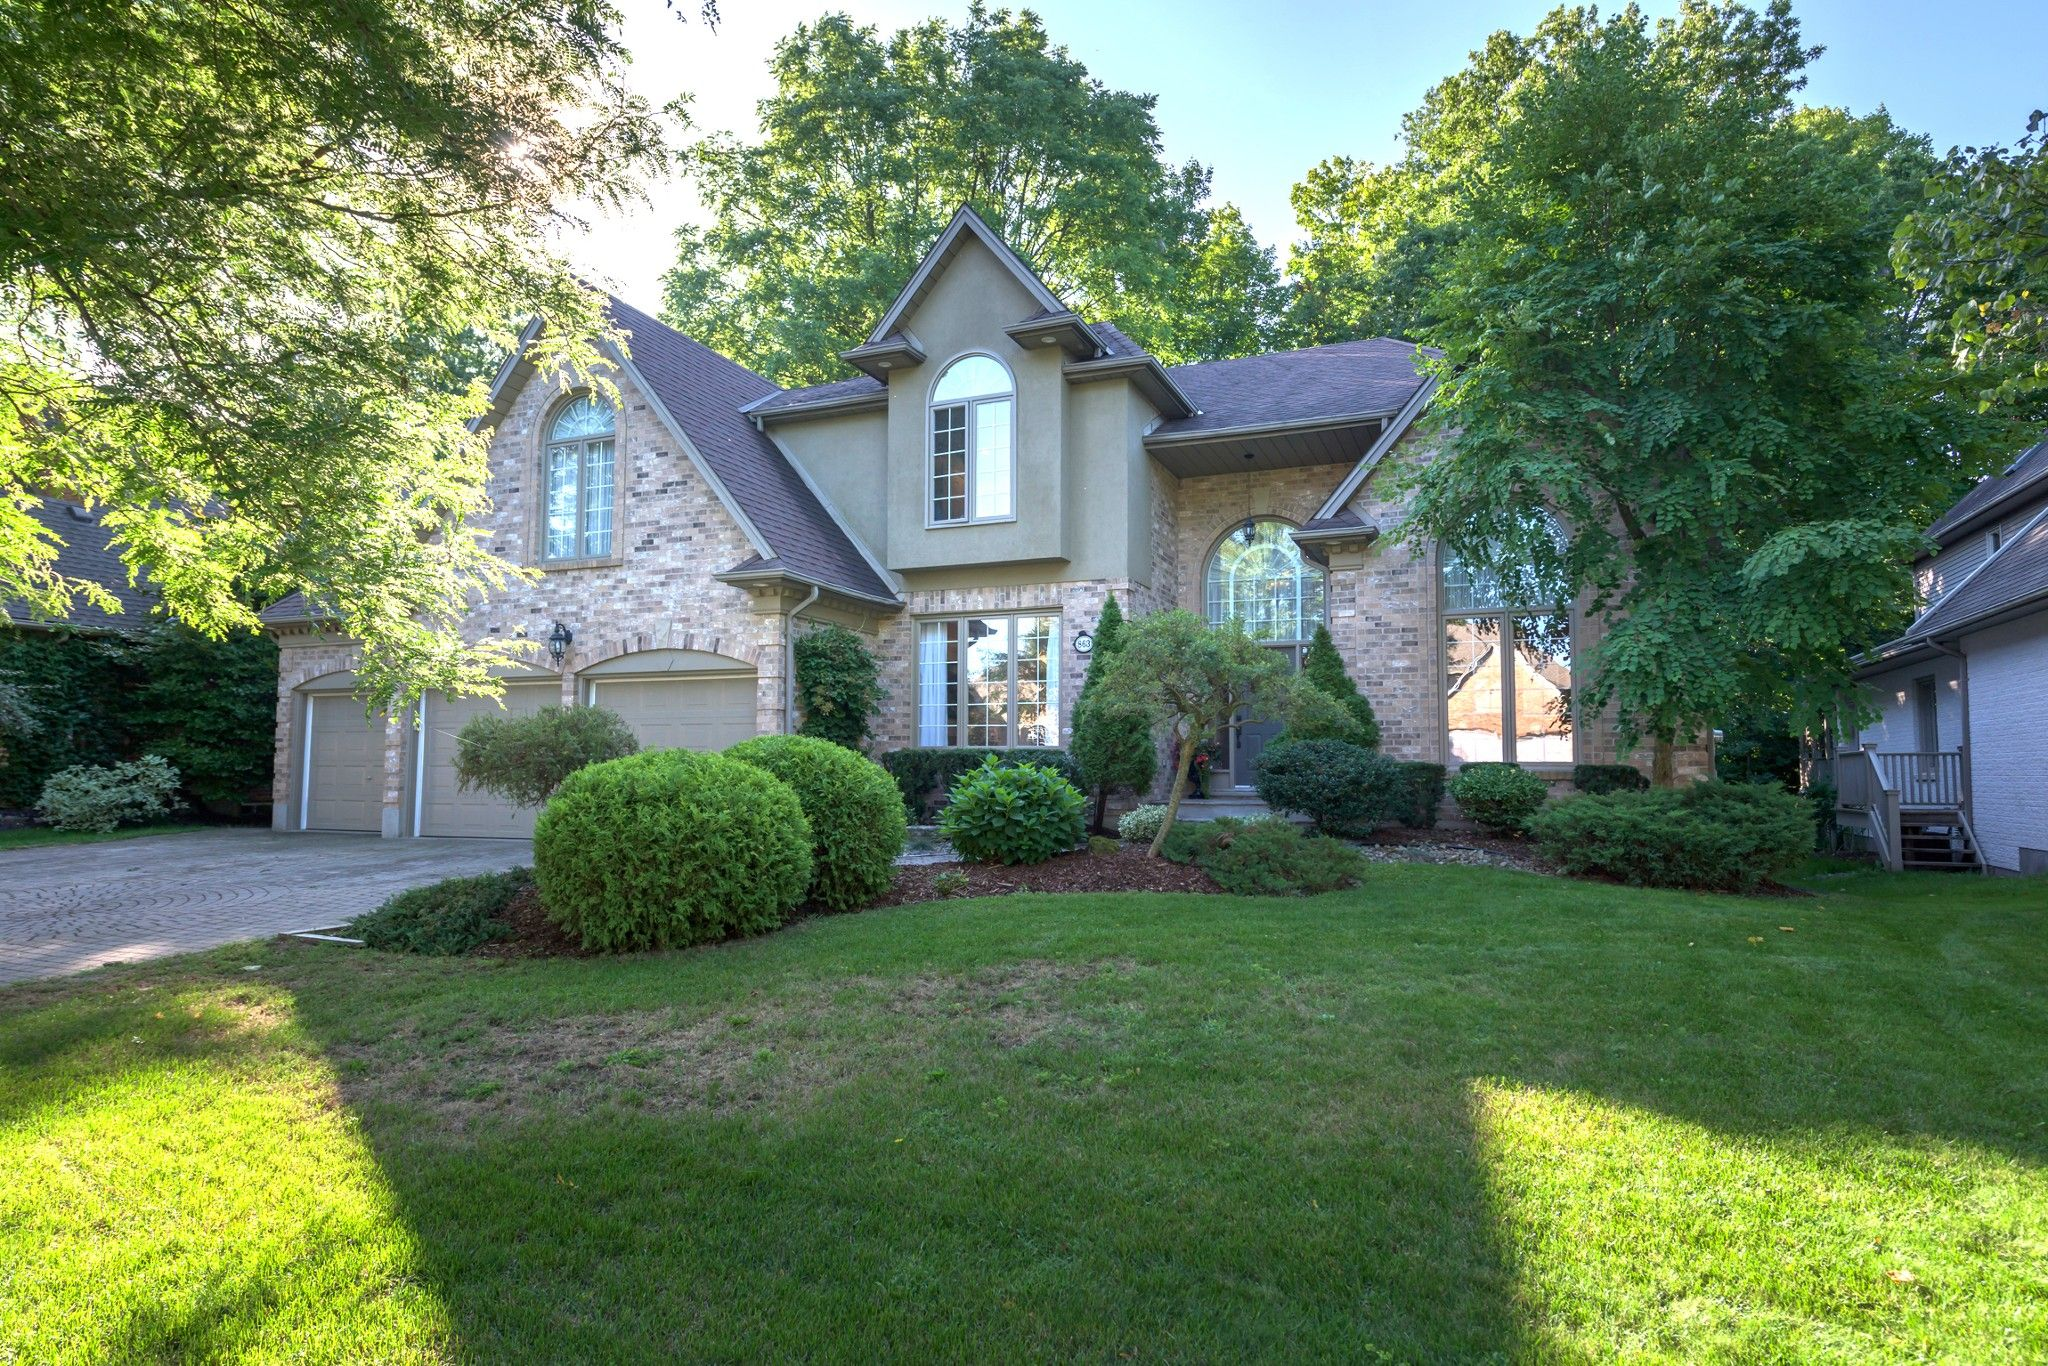 Main Photo: 863 MANCHESTER Road in London: Property for sale : MLS®# 40019630